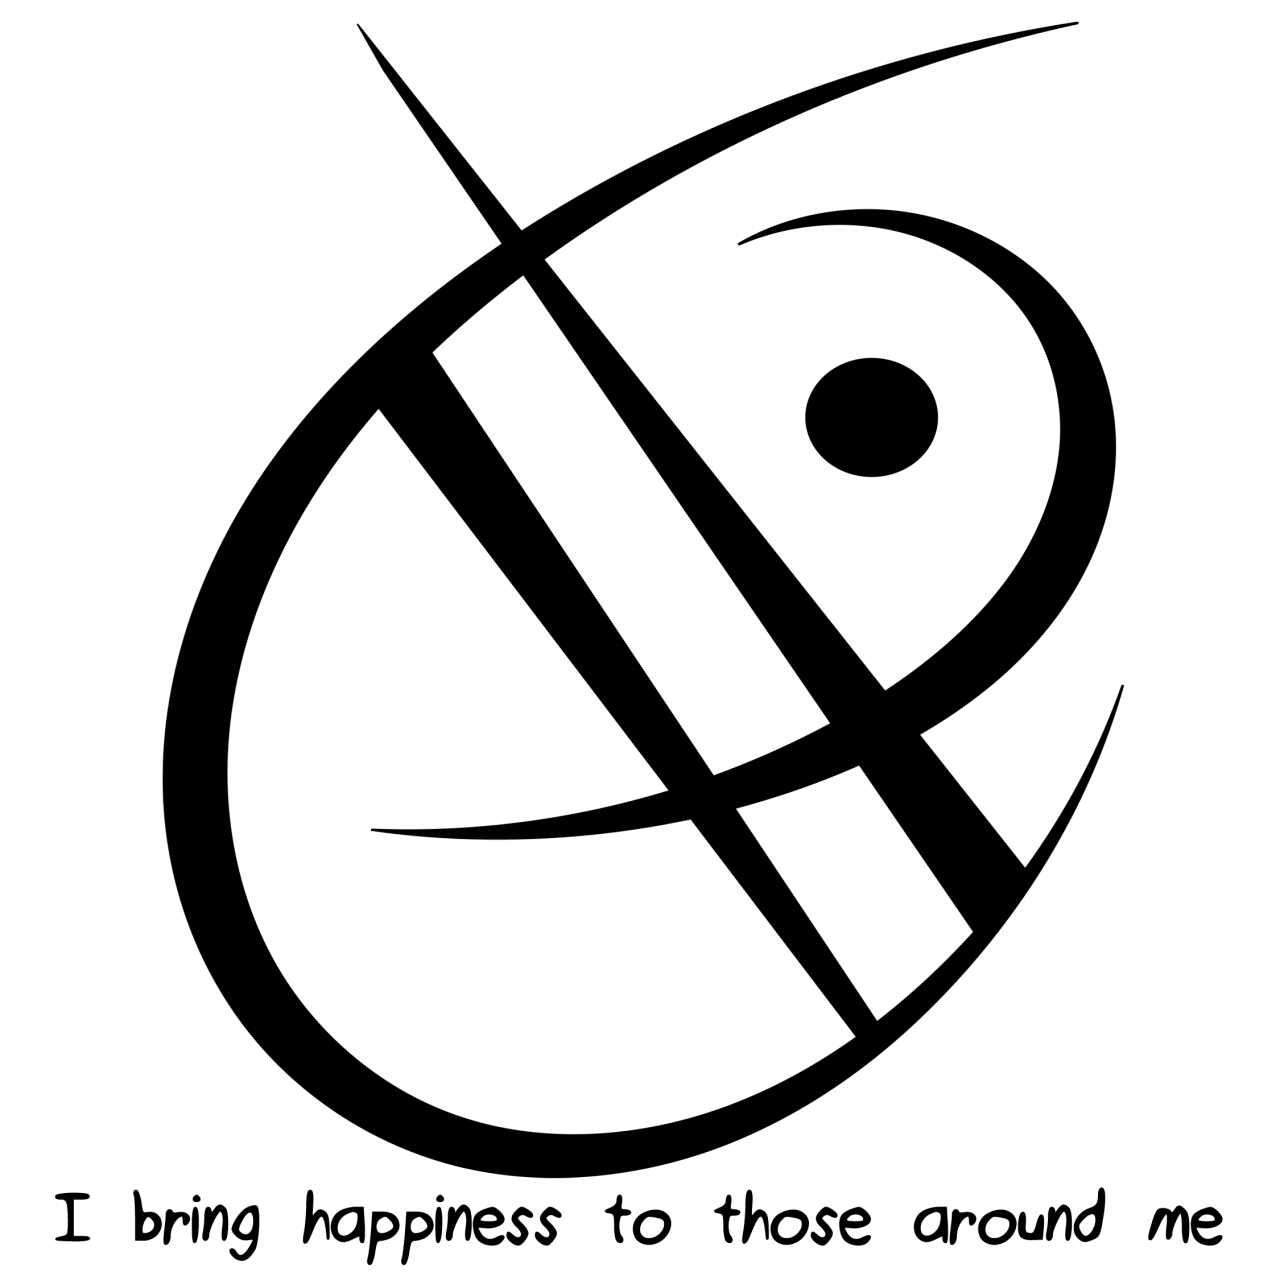 Witch symbol png. I bring happiness to